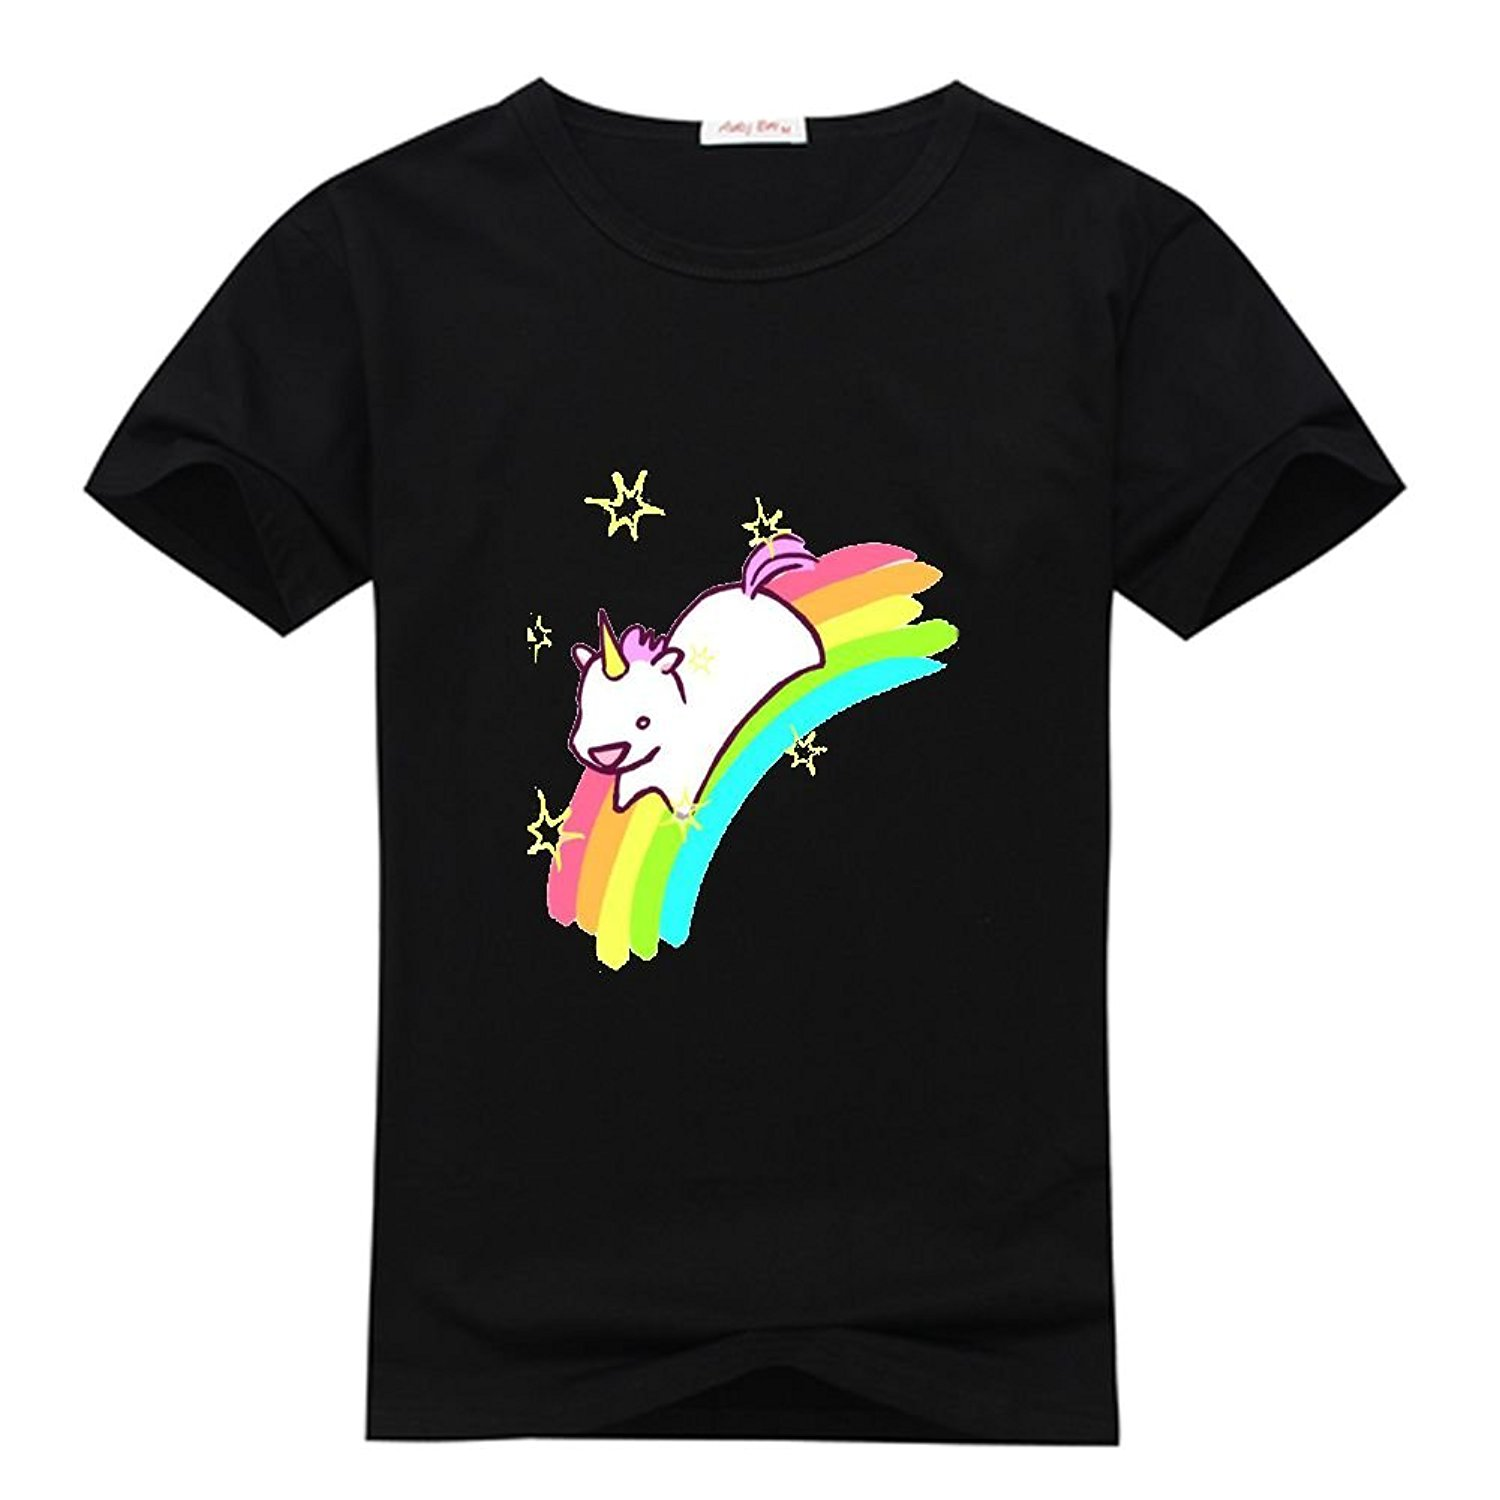 Mens Cotton T-Shirt with Kawaii narwhal